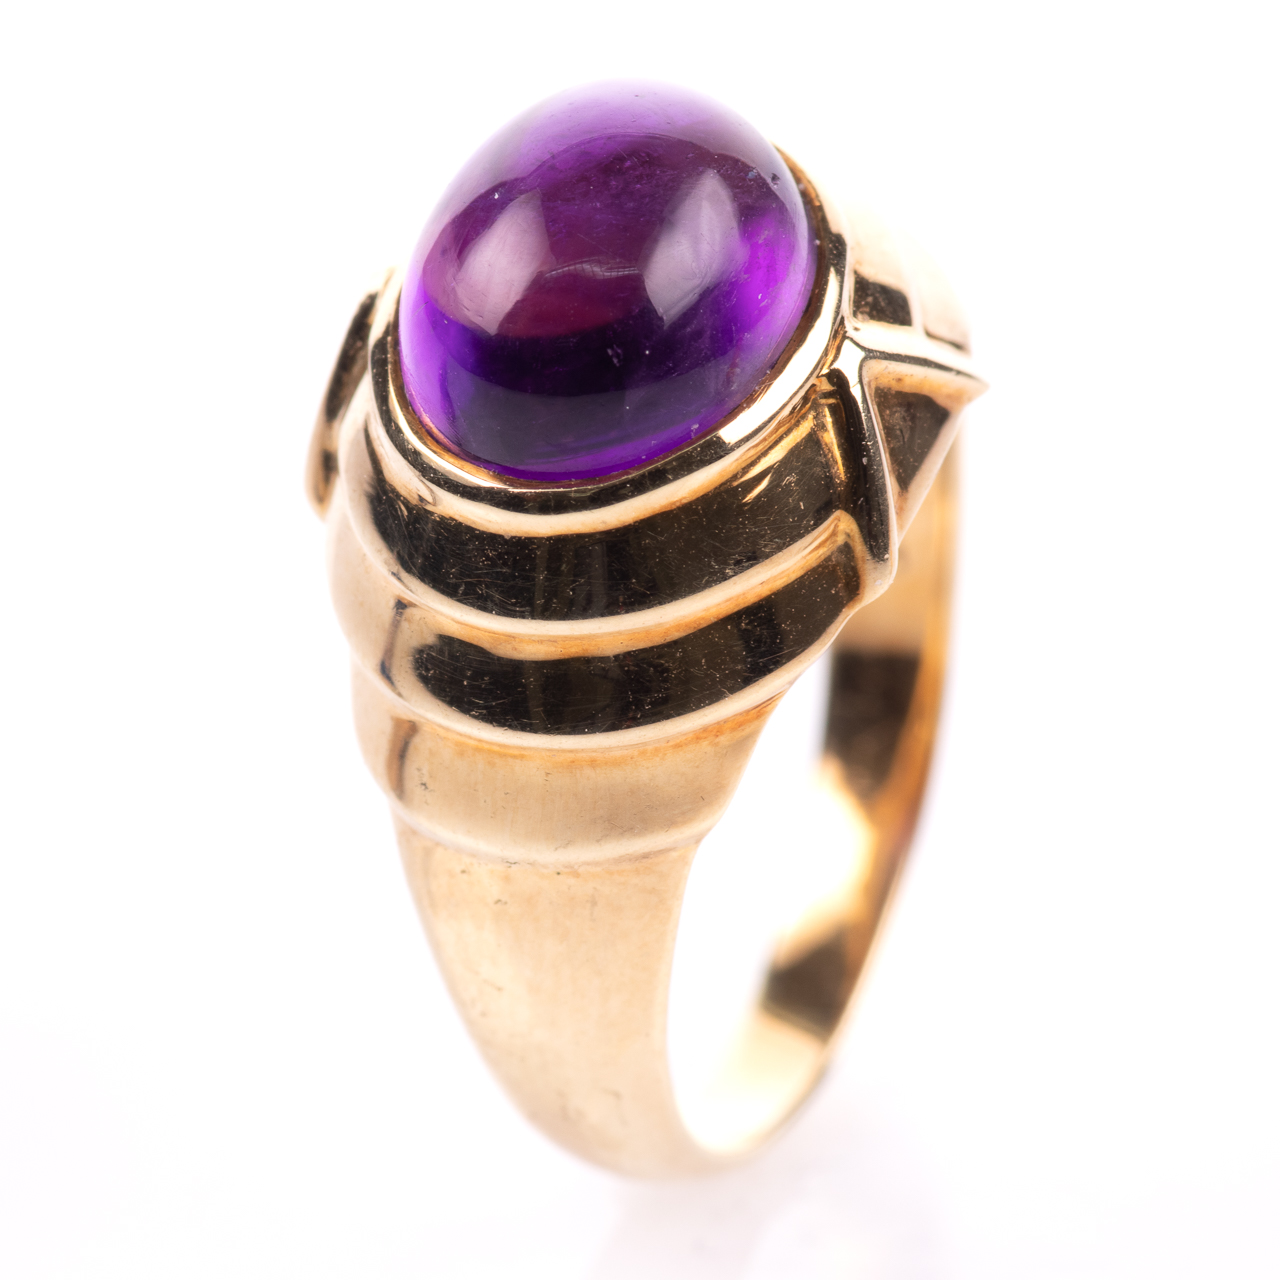 14ct Gold Amethyst Cabochon Ring Egyptian Revival Style